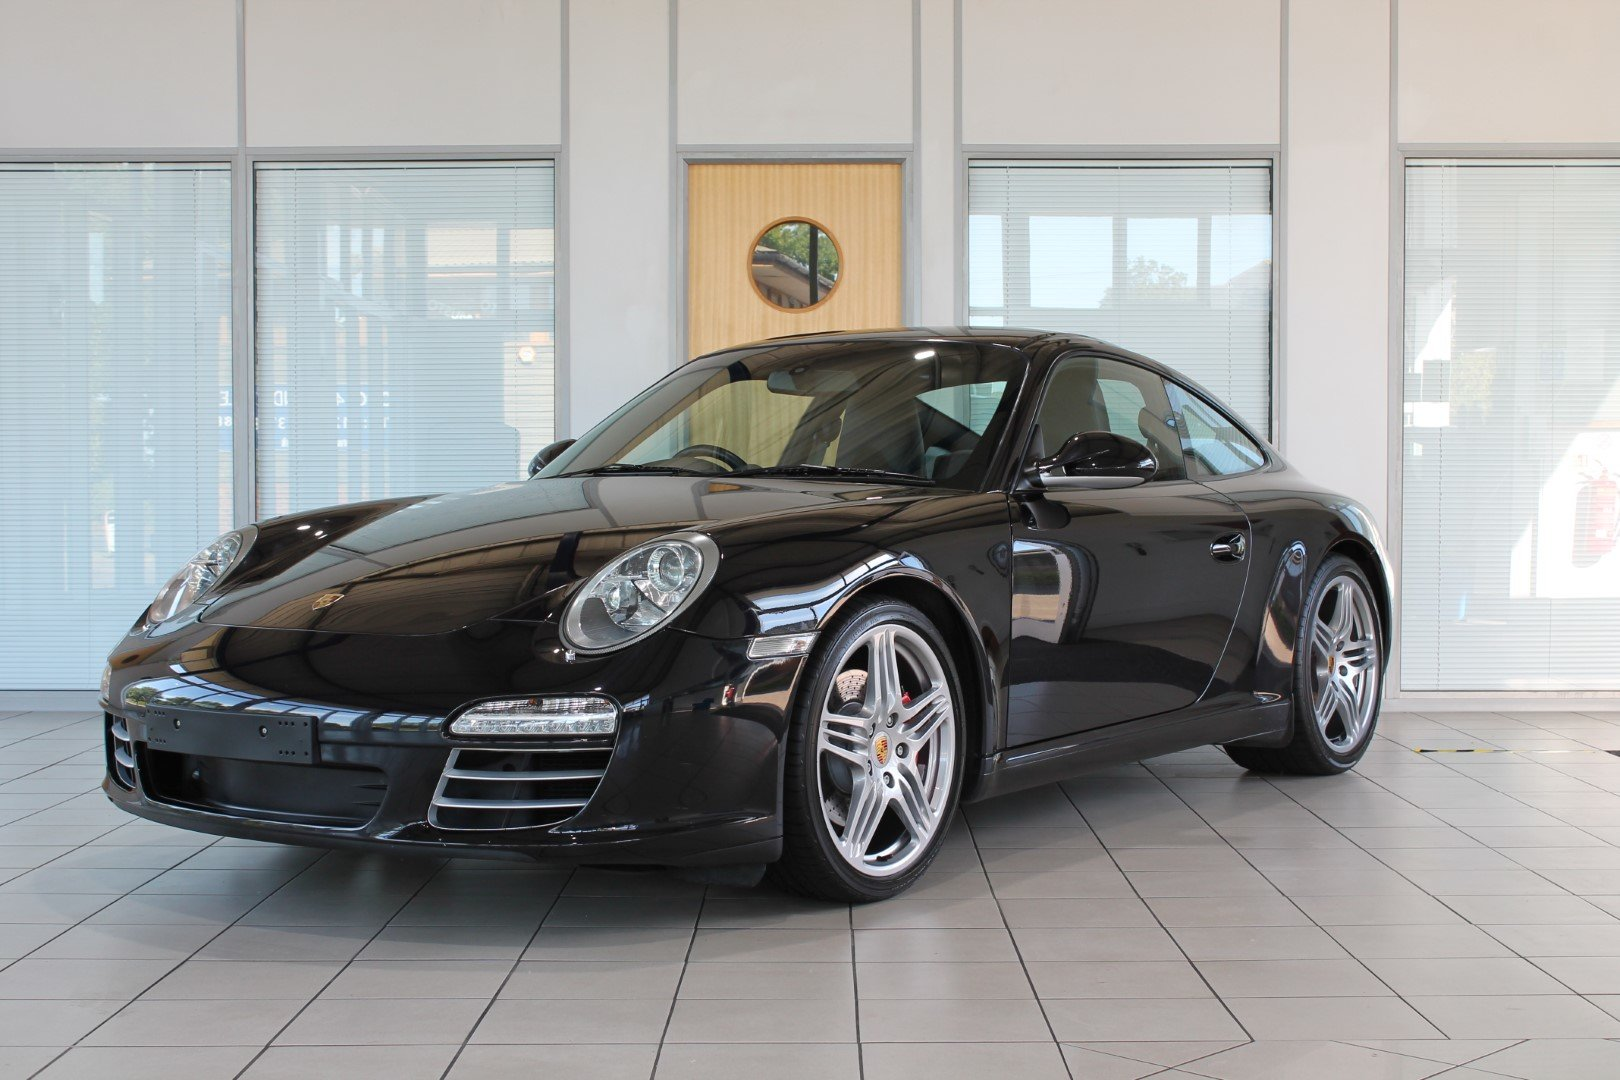 2010 Porsche 911 (997) 3.8 S PDK Coupe For Sale (picture 1 of 6)